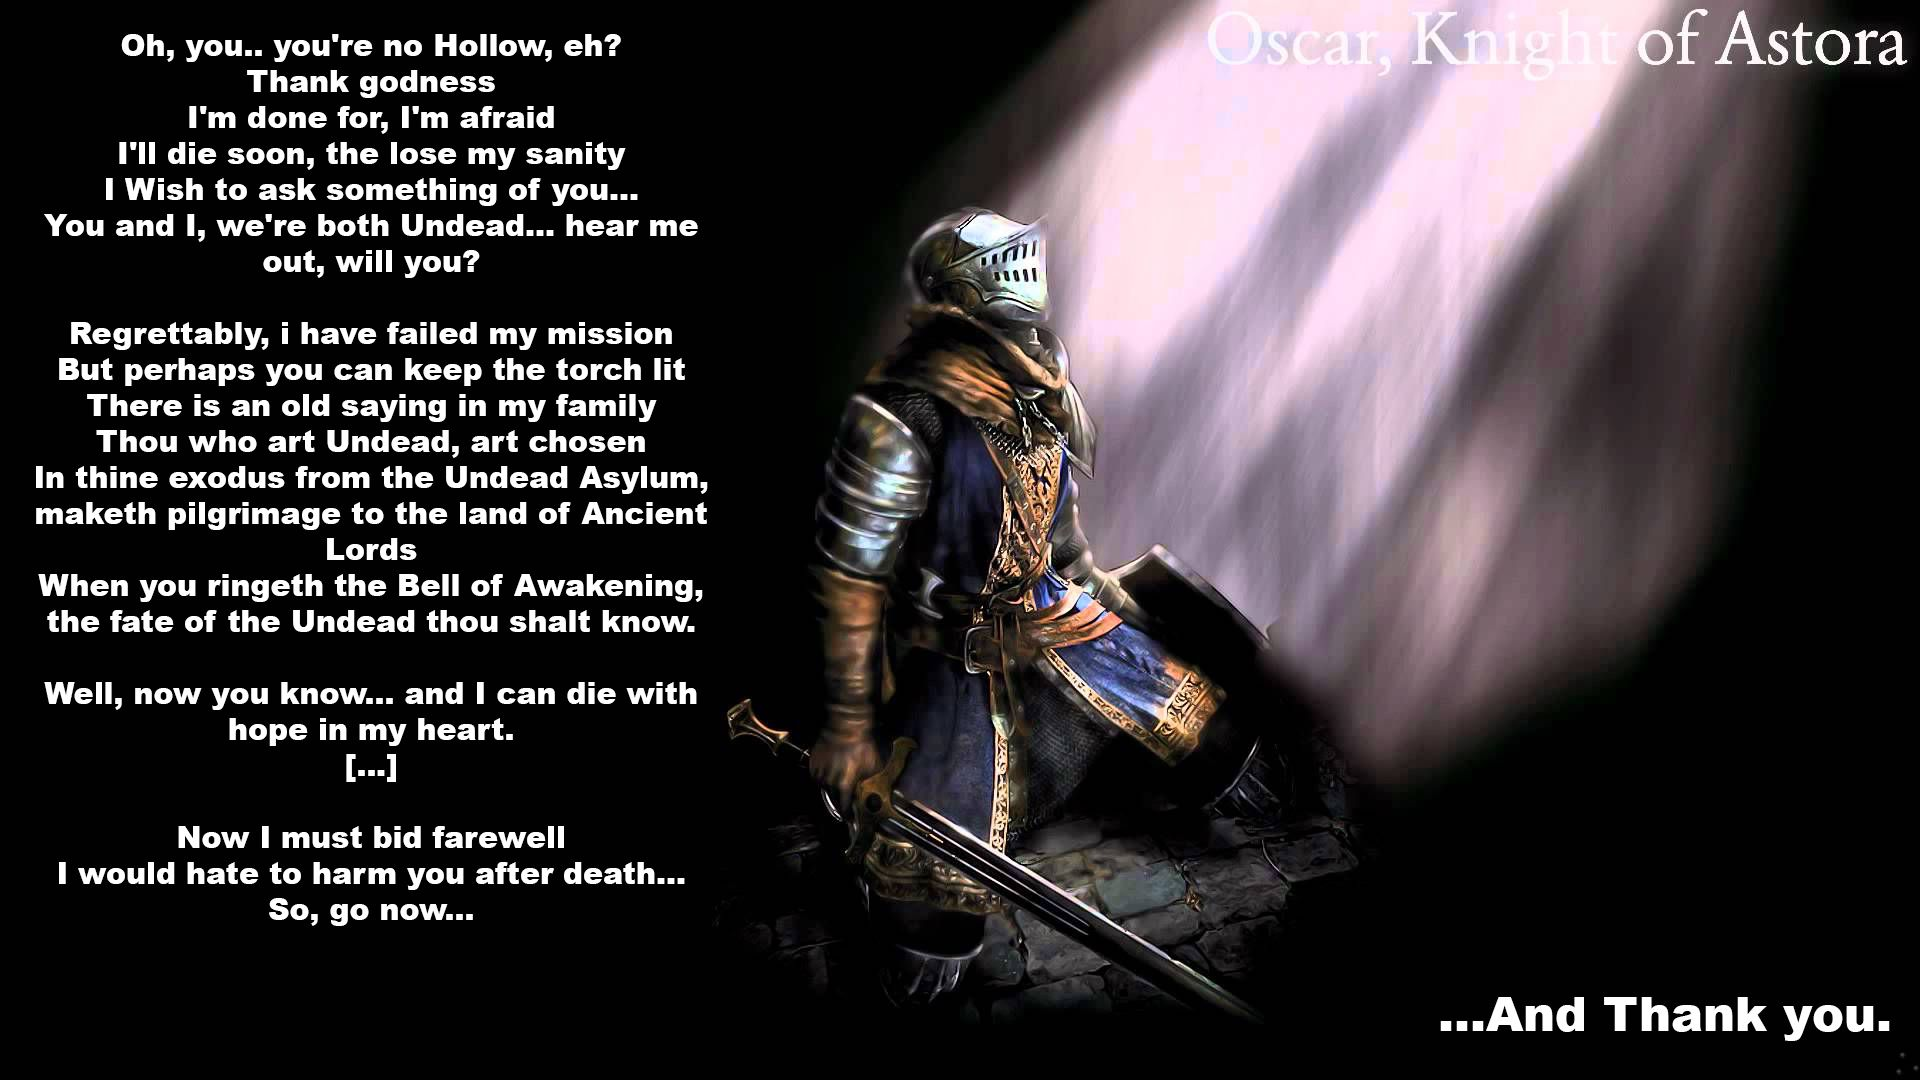 Quotes About Dark Souls: Oscar, Knight Of Astora - Dark Souls